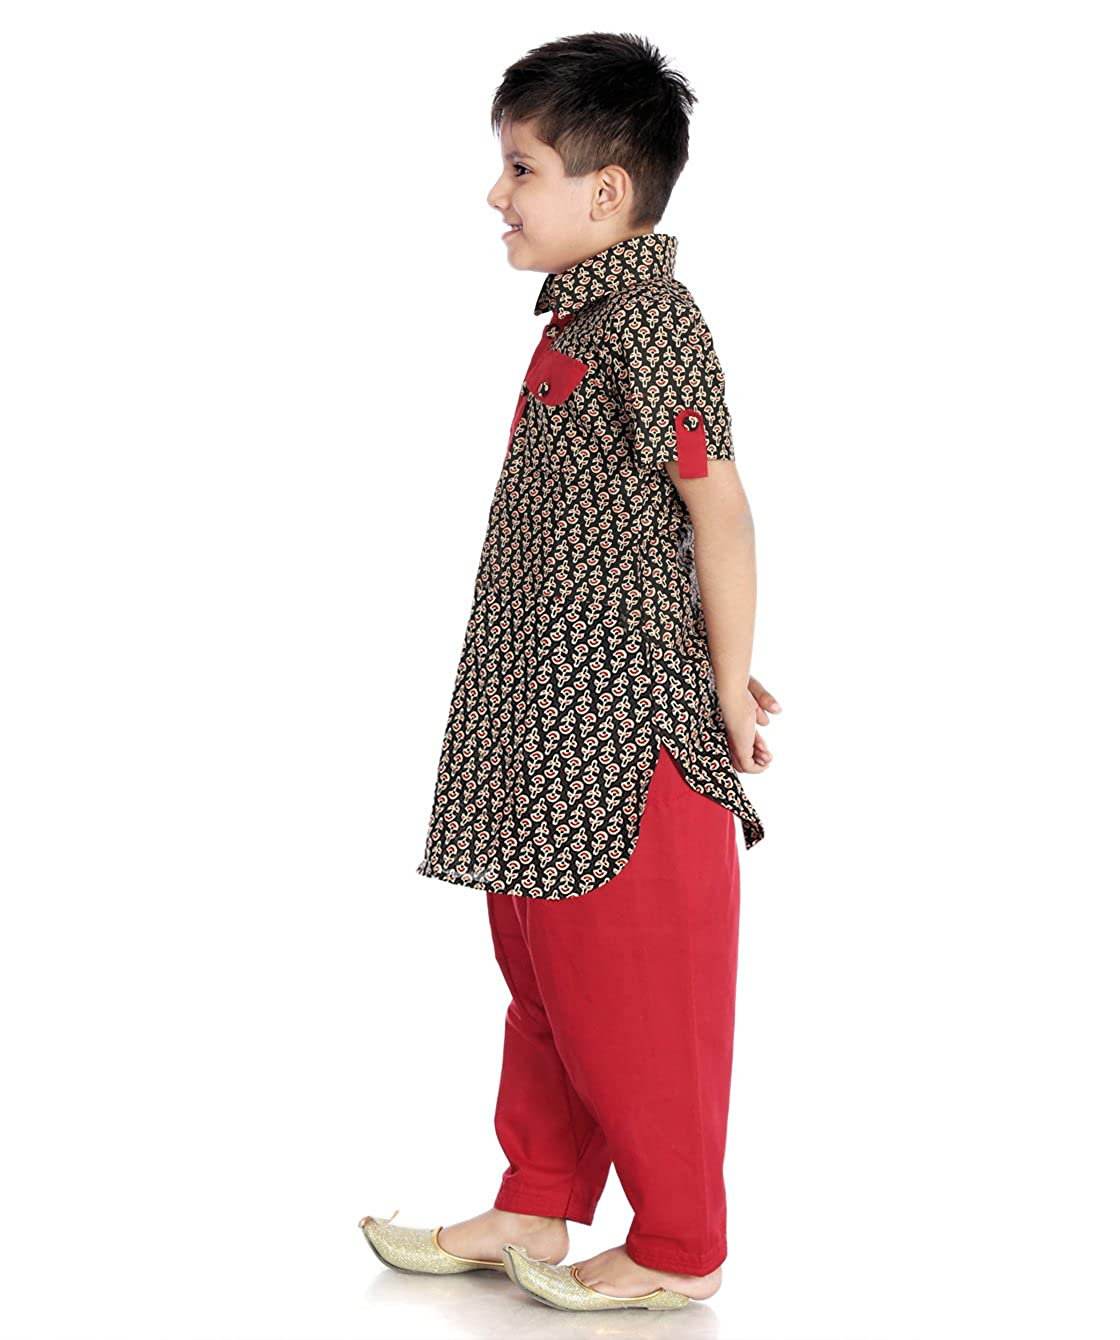 bbcbc1d90 Little Pocket Store Kids Black & Maroon Cotton Printed Pathani Suit For Boys:  Amazon.in: Clothing & Accessories